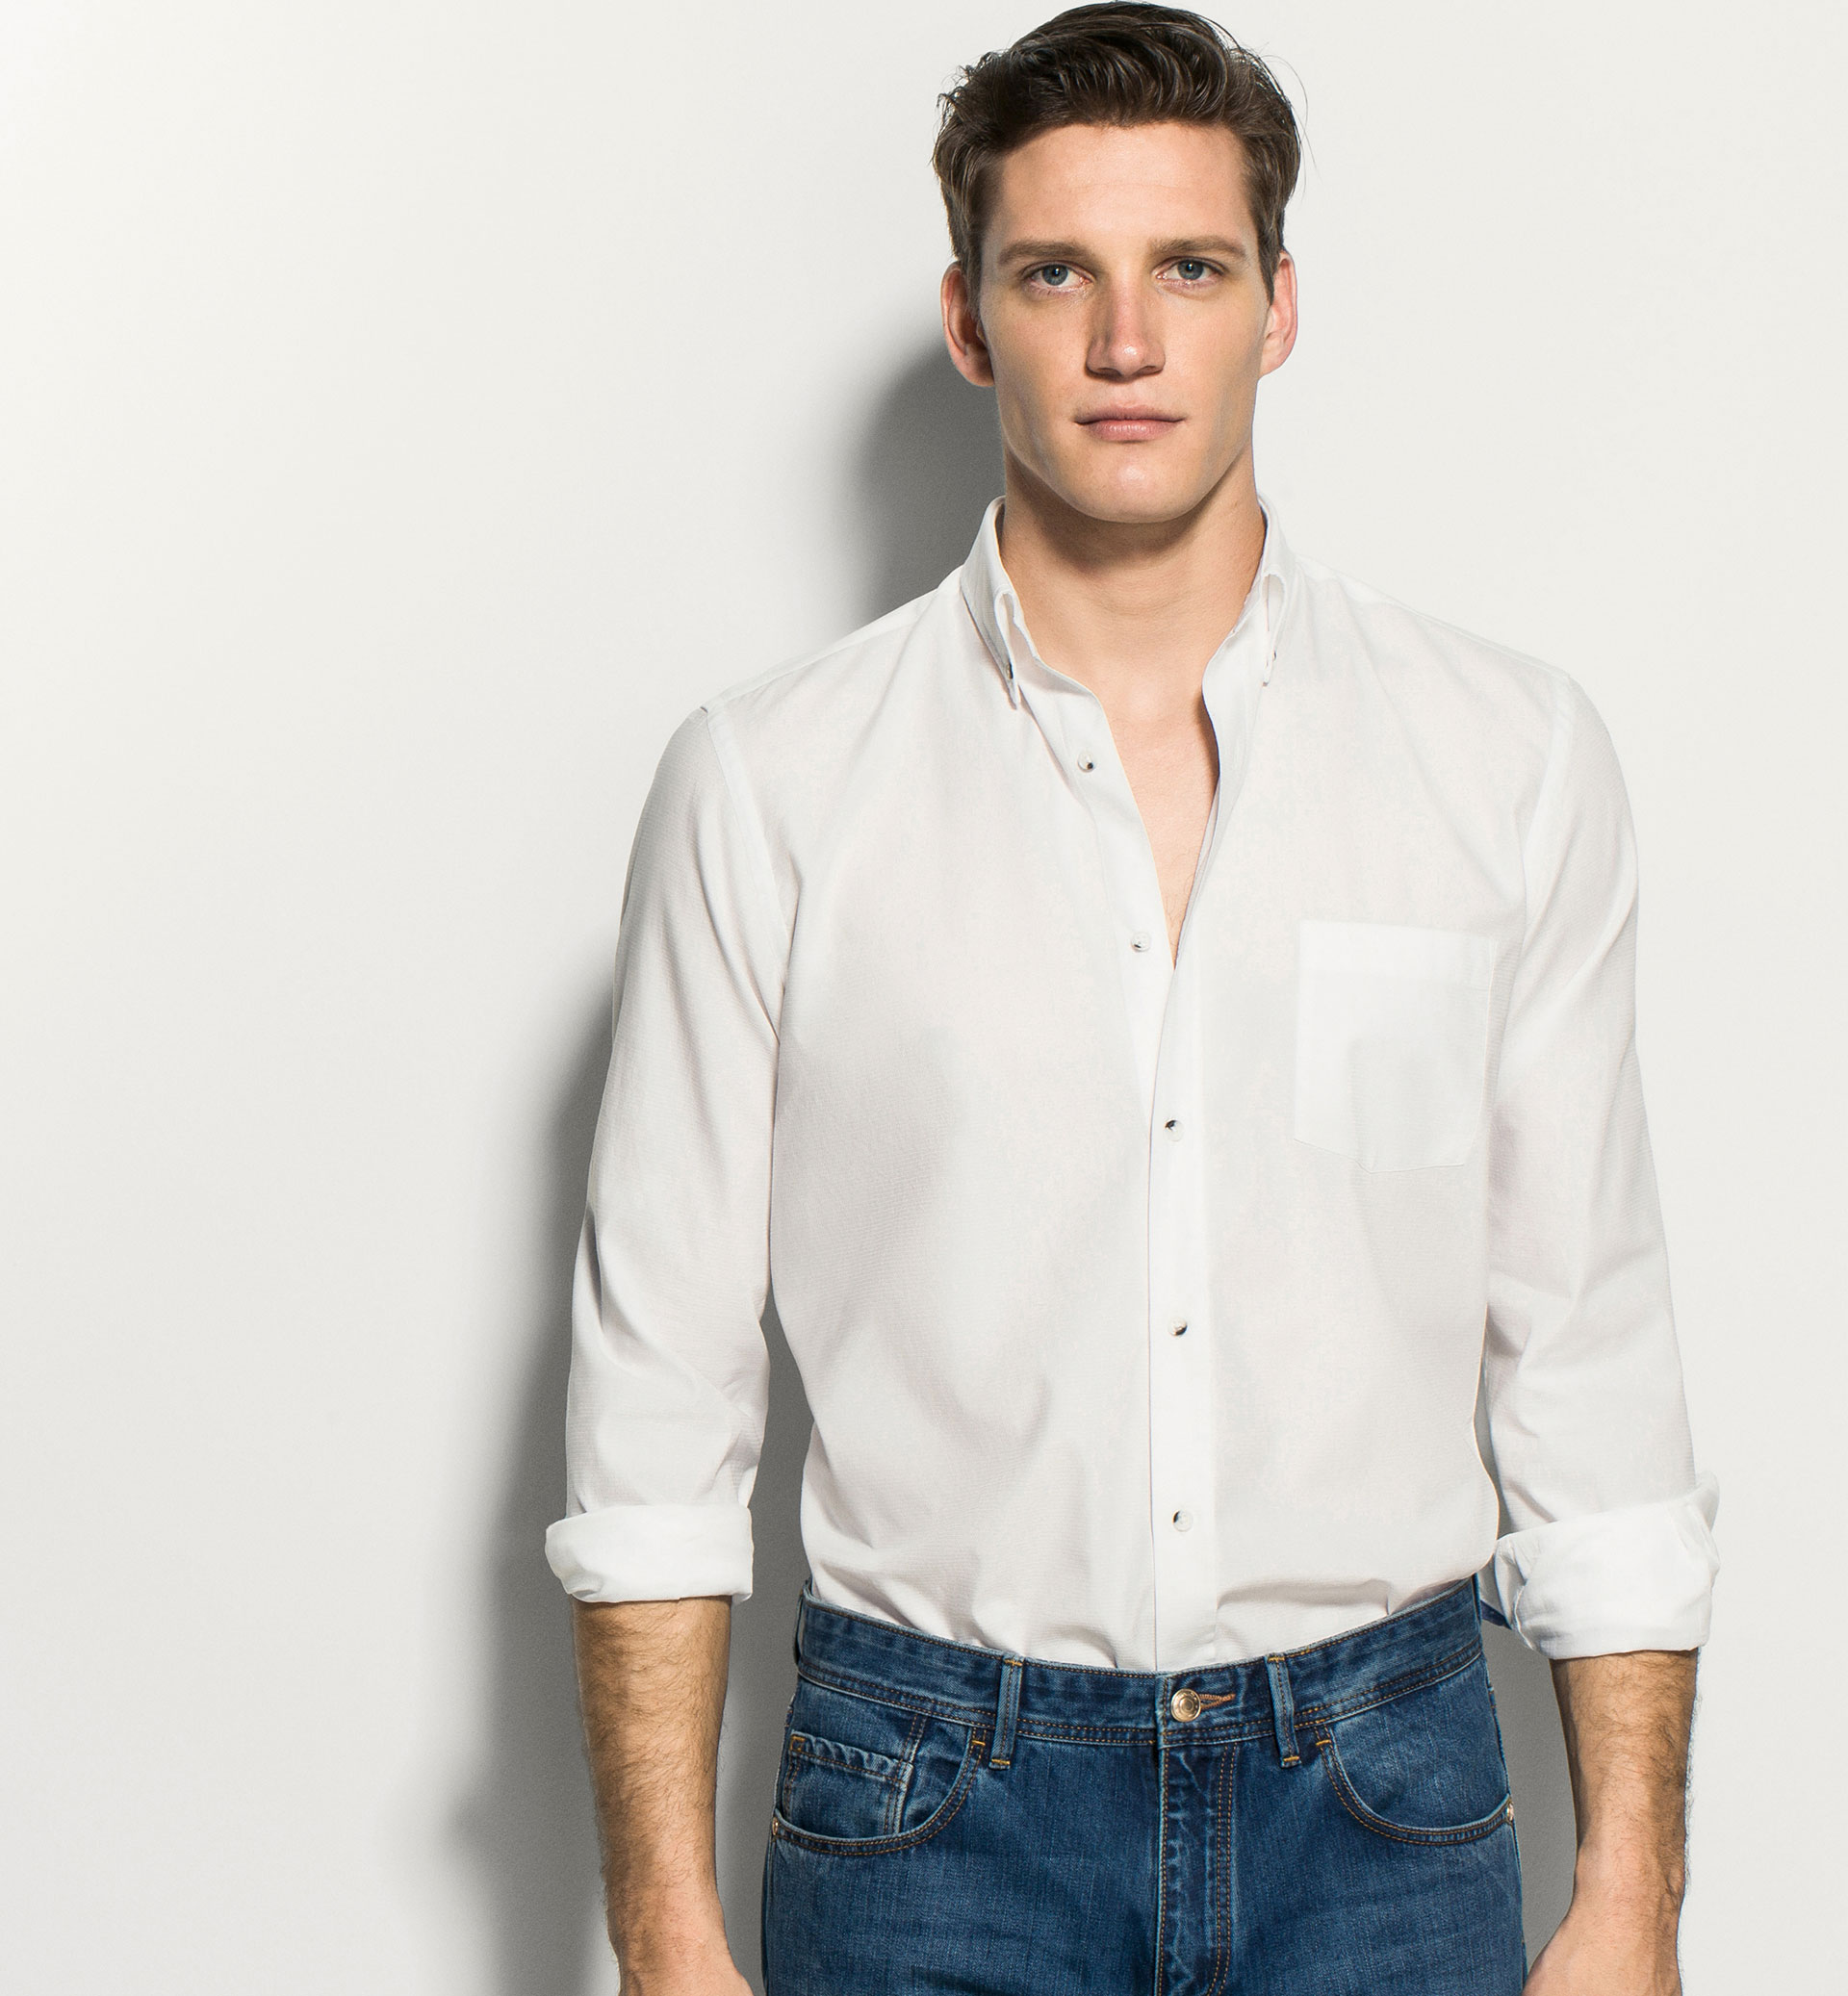 SLIM FIT WHITE SHIRT WITH ELBOW PATCHES